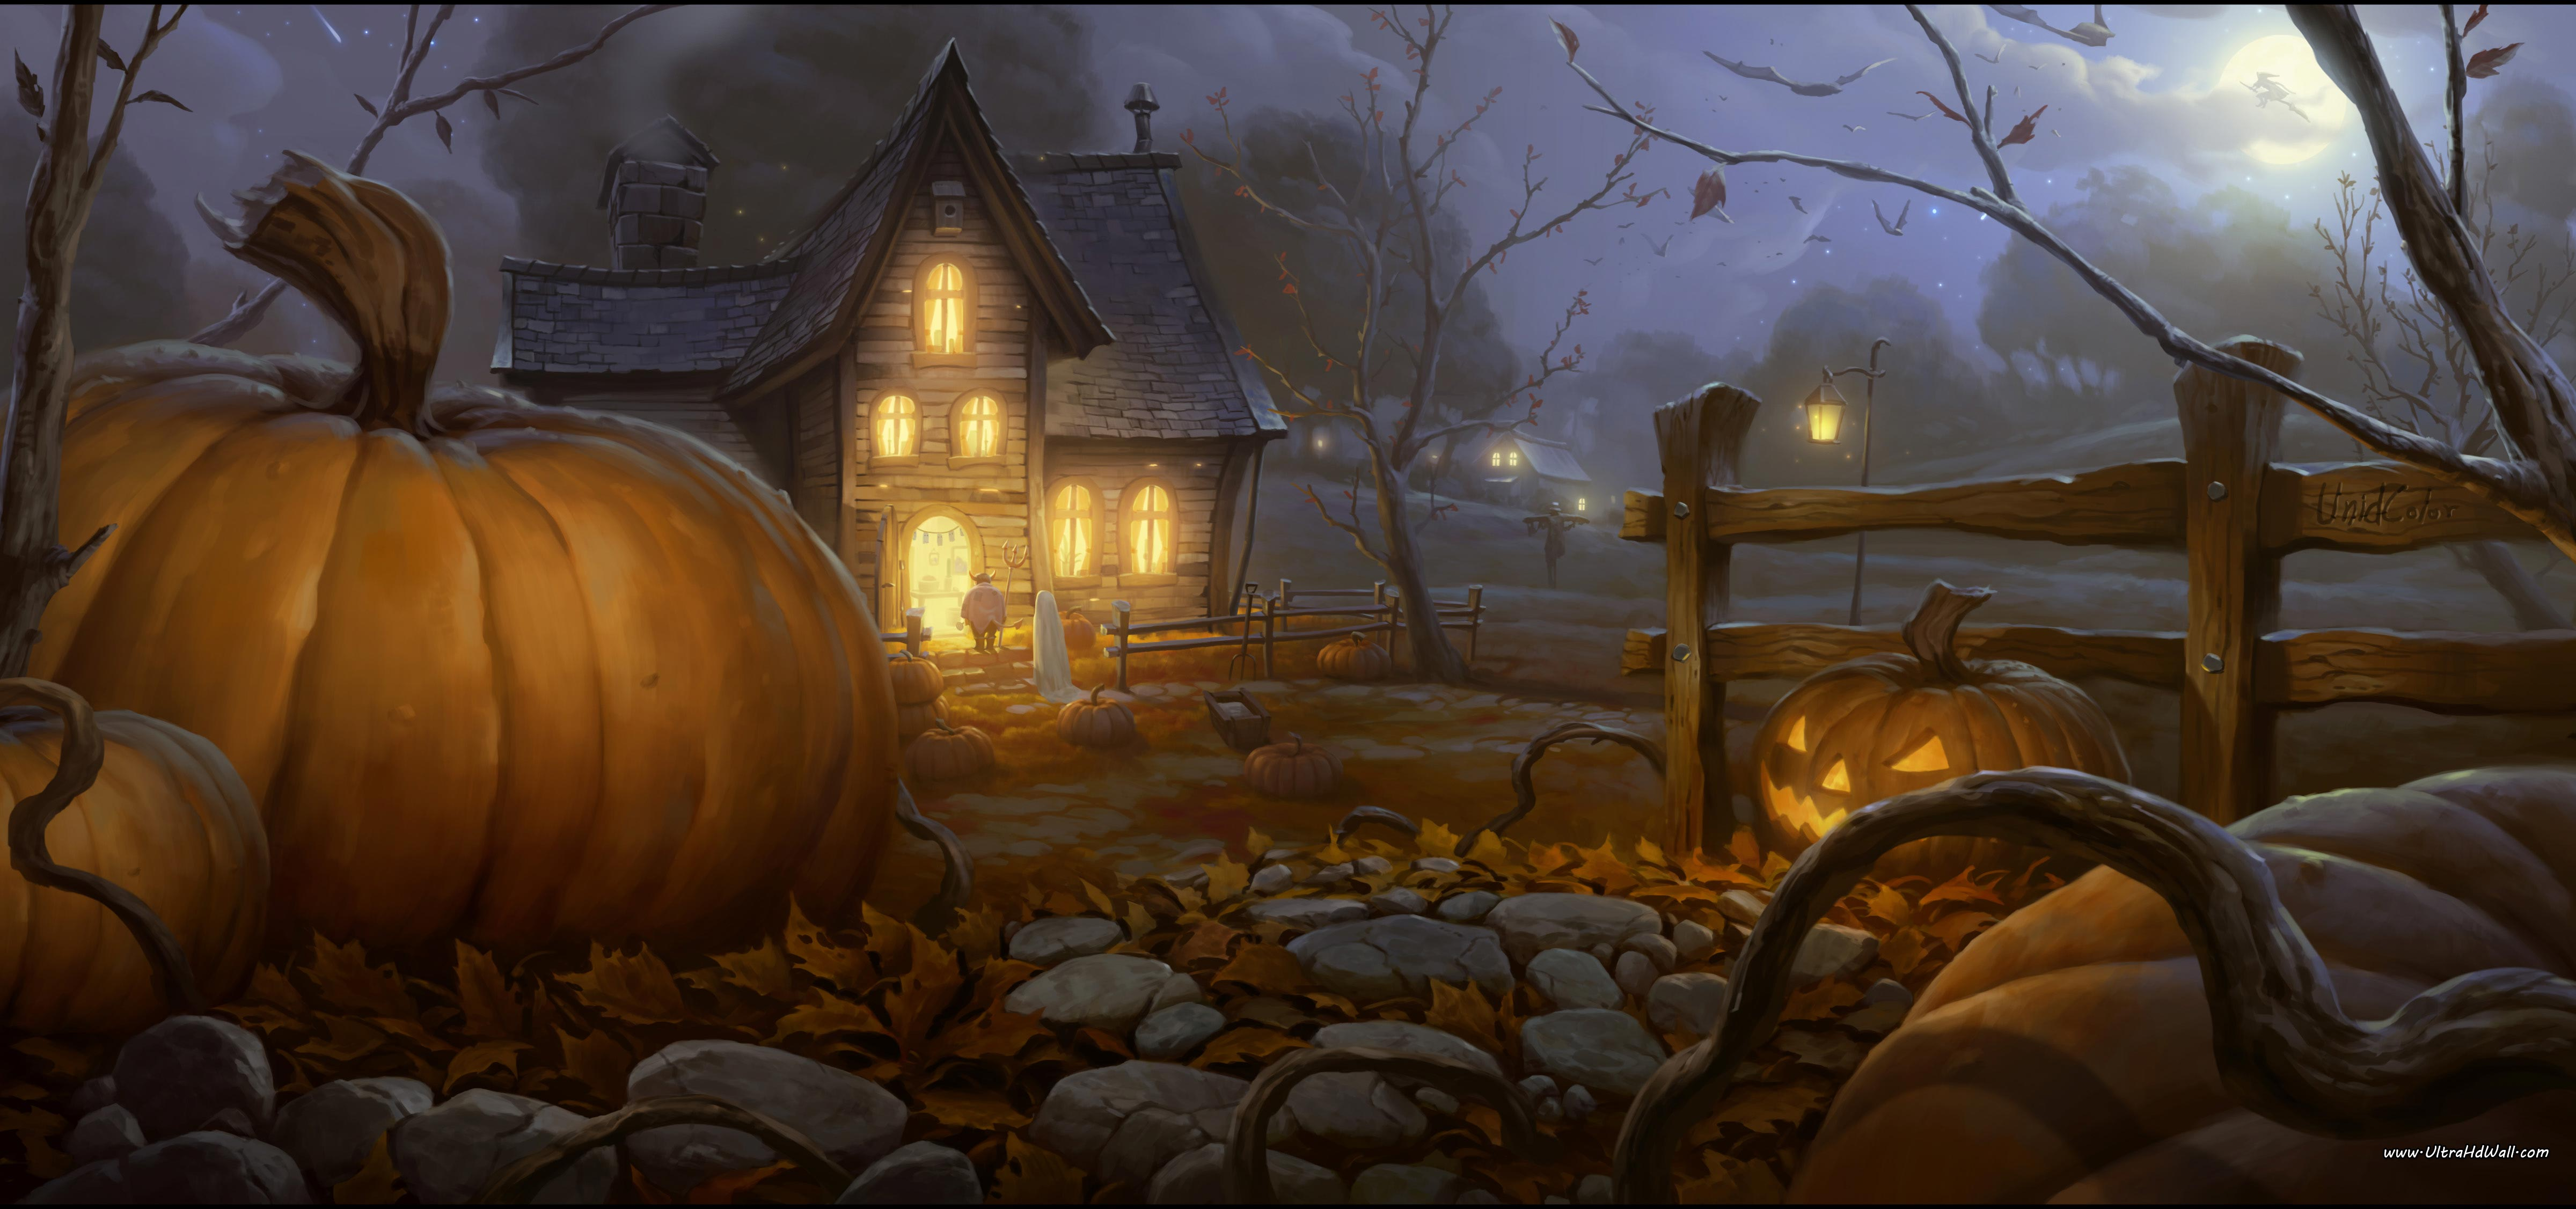 Halloween Desktop Wallpaper 4800x2253